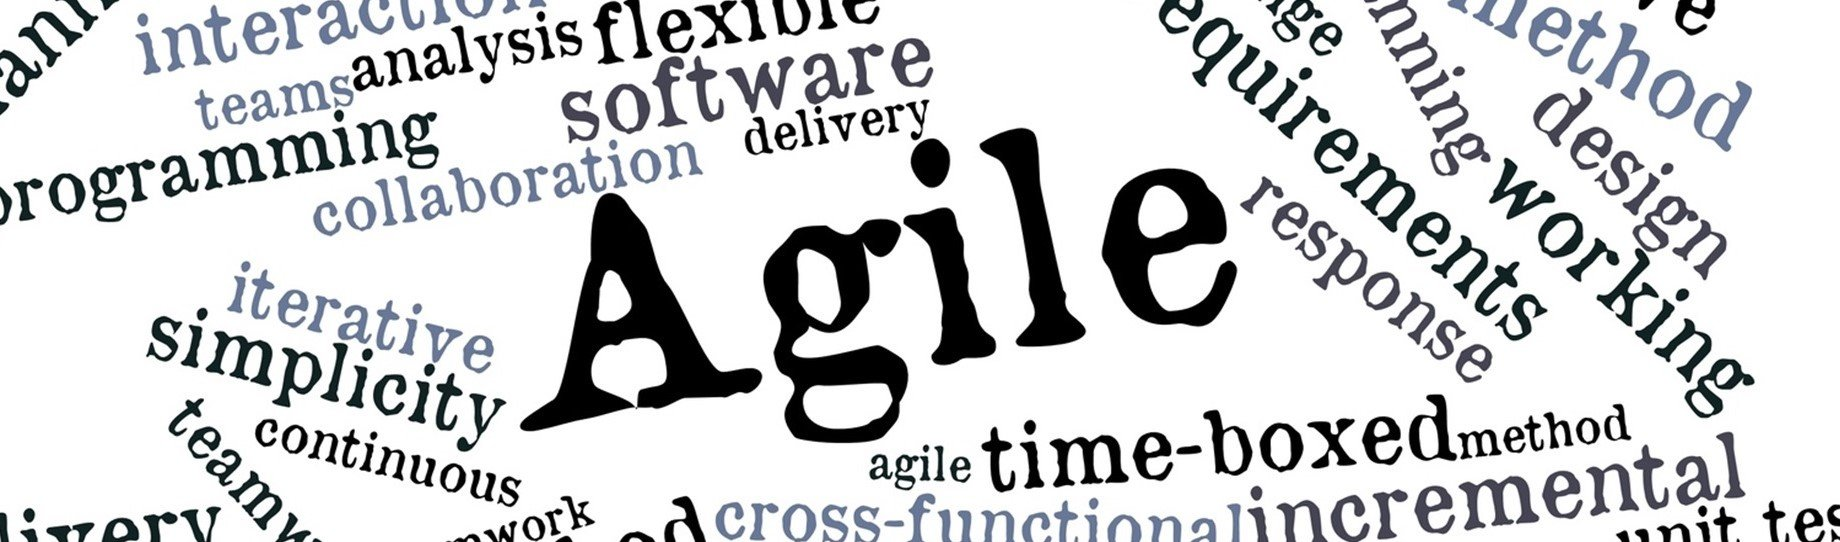 All About Agile Pmi Acp Training Cape Project Management Inc